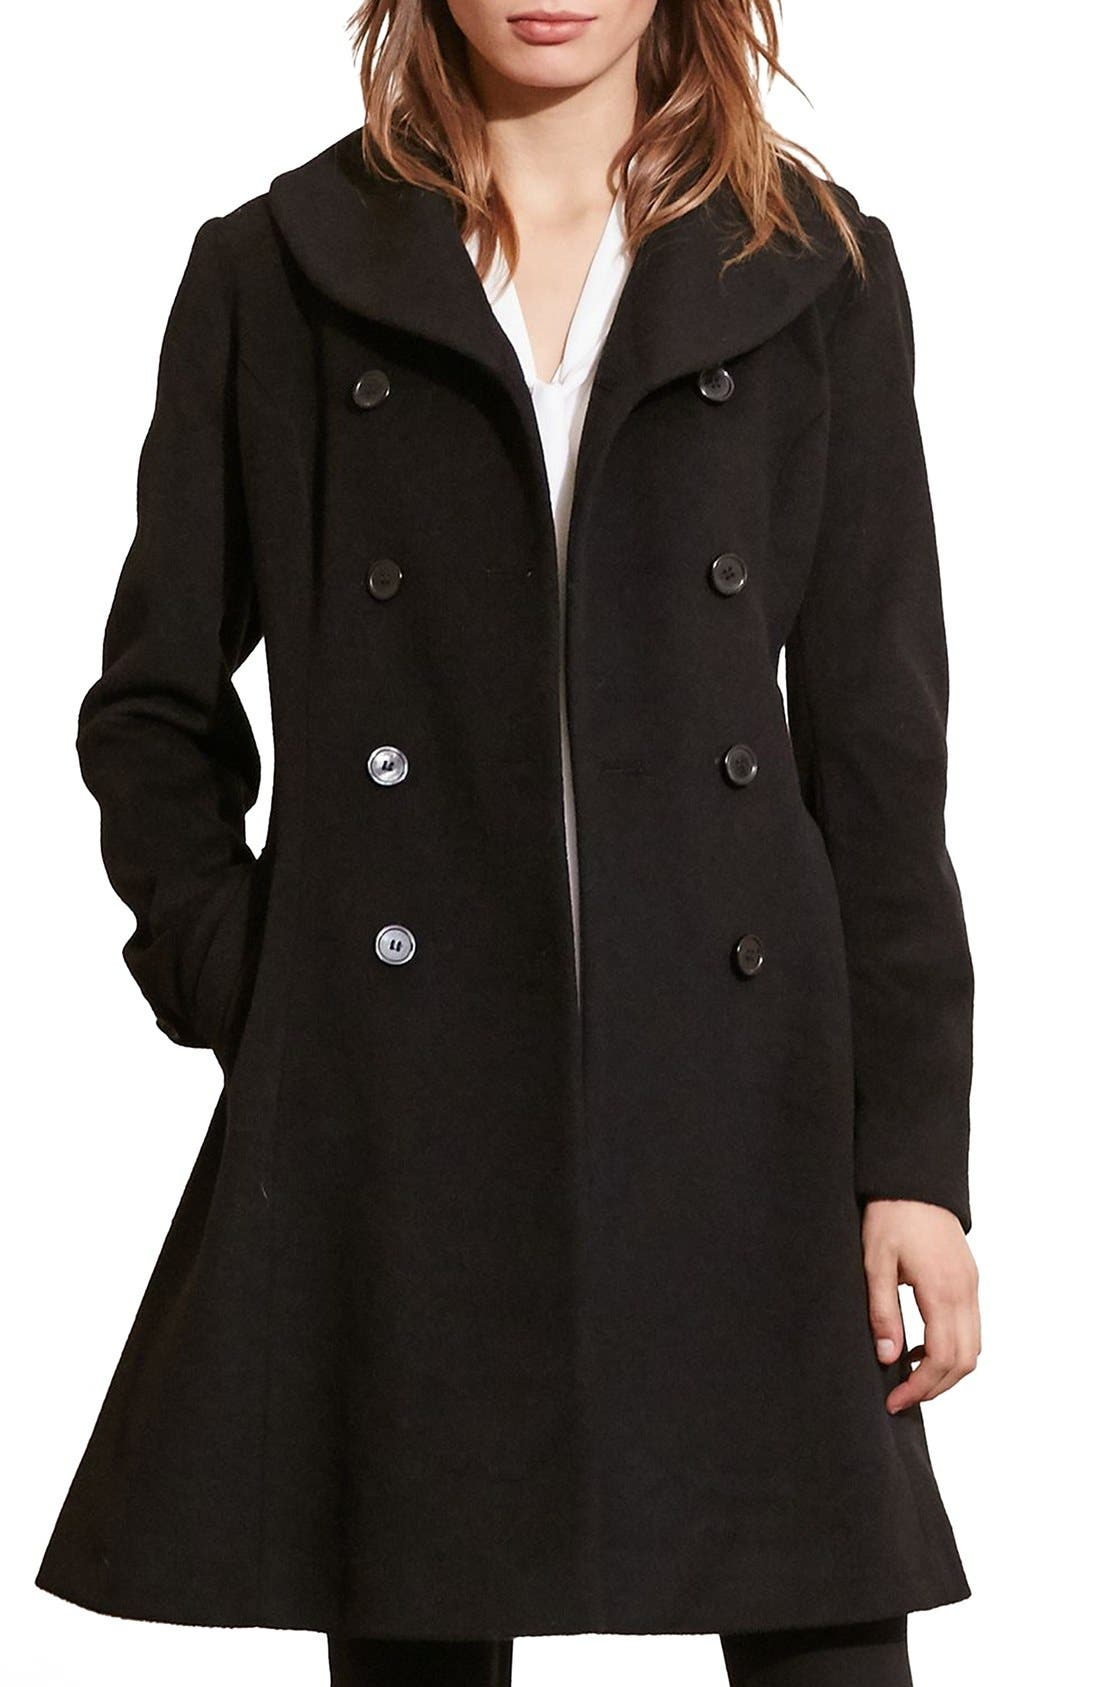 Main Image - Lauren Ralph Lauren Fit & Flare Military Coat